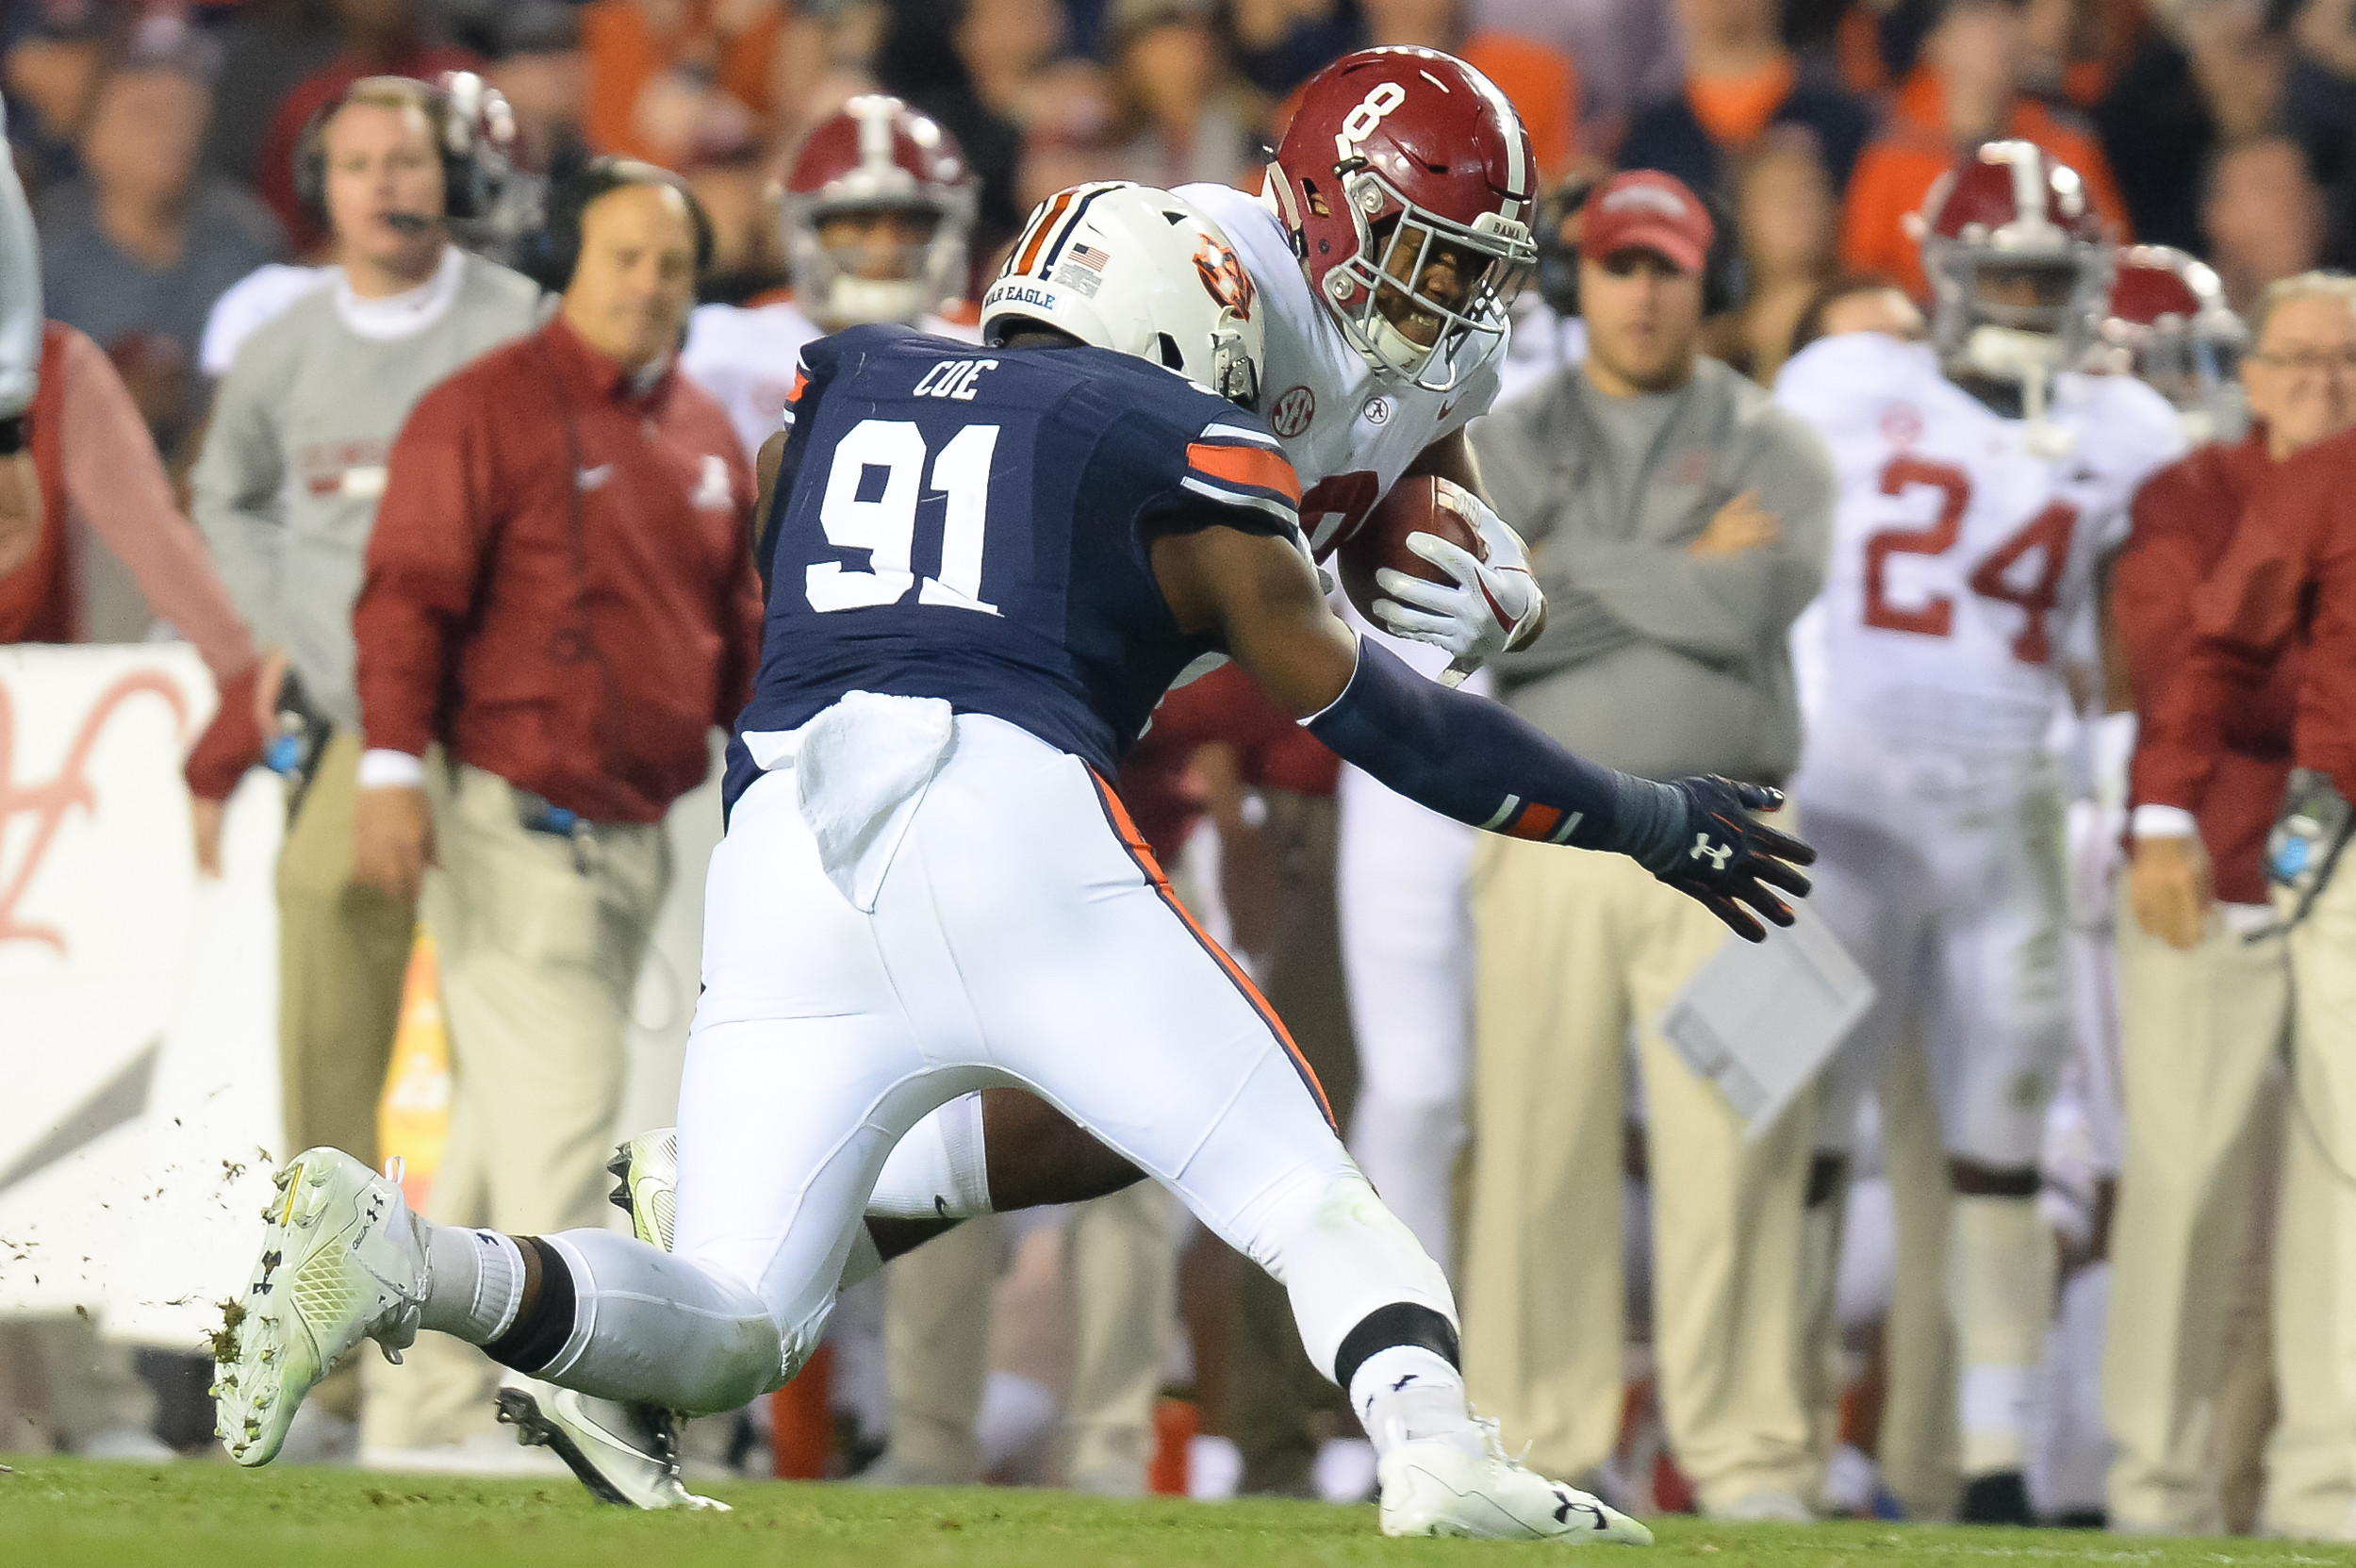 Auburn Tigers defensive lineman Nick Coe (91) tackles Alabama Crimson Tide running back Josh Jacobs (8) during the second half of Saturday's game, at Jordan-Hare Stadium.